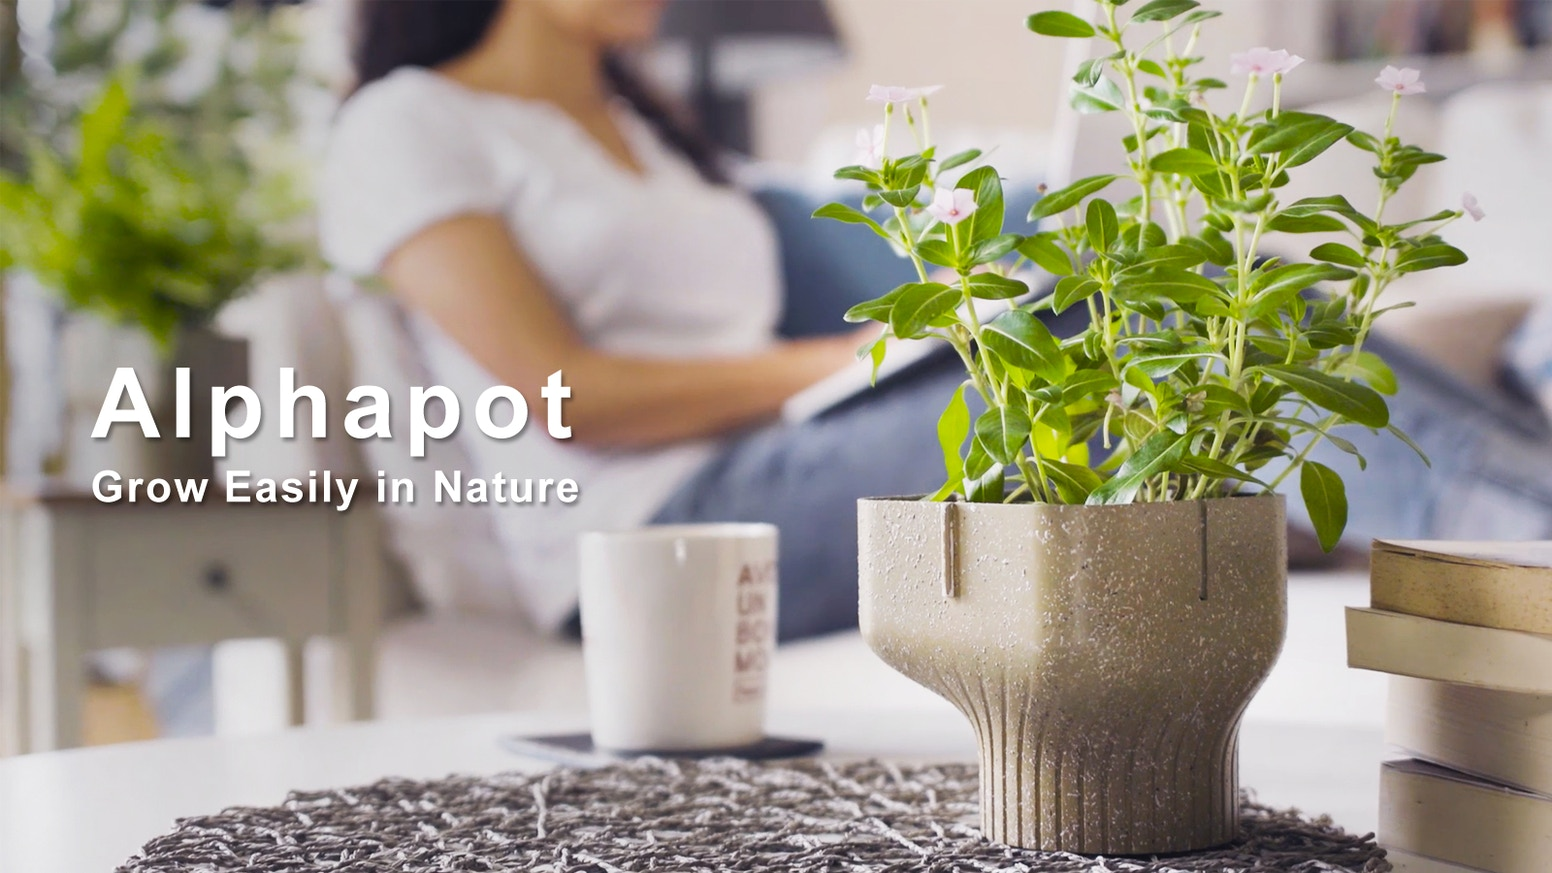 Bringing green into your home more easily! Alphapot, the 100% biodegradable plant pot, reducing and repurposing food waste.